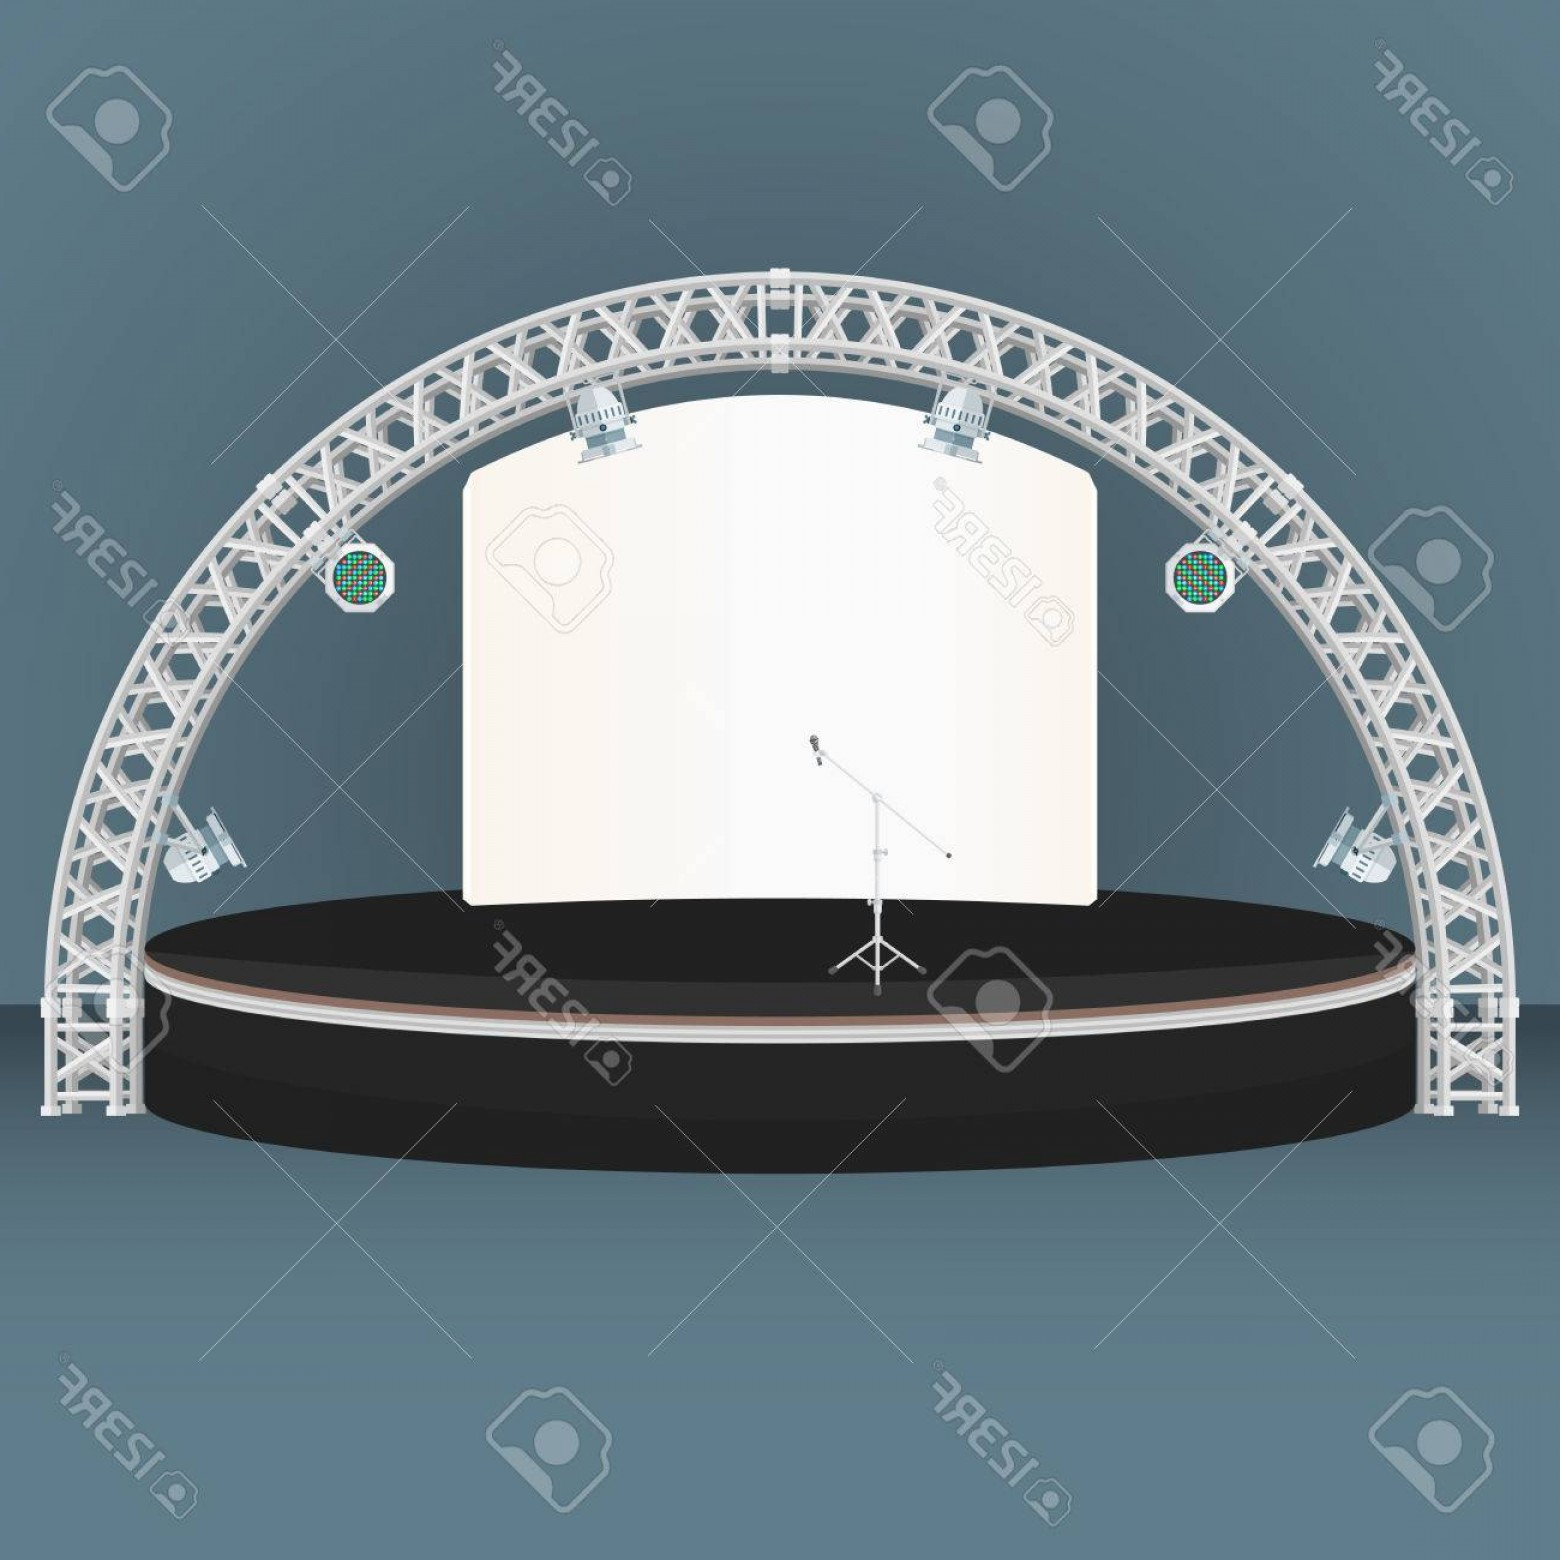 Aluminum Truss Design Vector: Photostock Vector Vector Black Color Flat Design Estrade Rounded Stage Metal Truss Rgb Led Lights Devices Microphone B